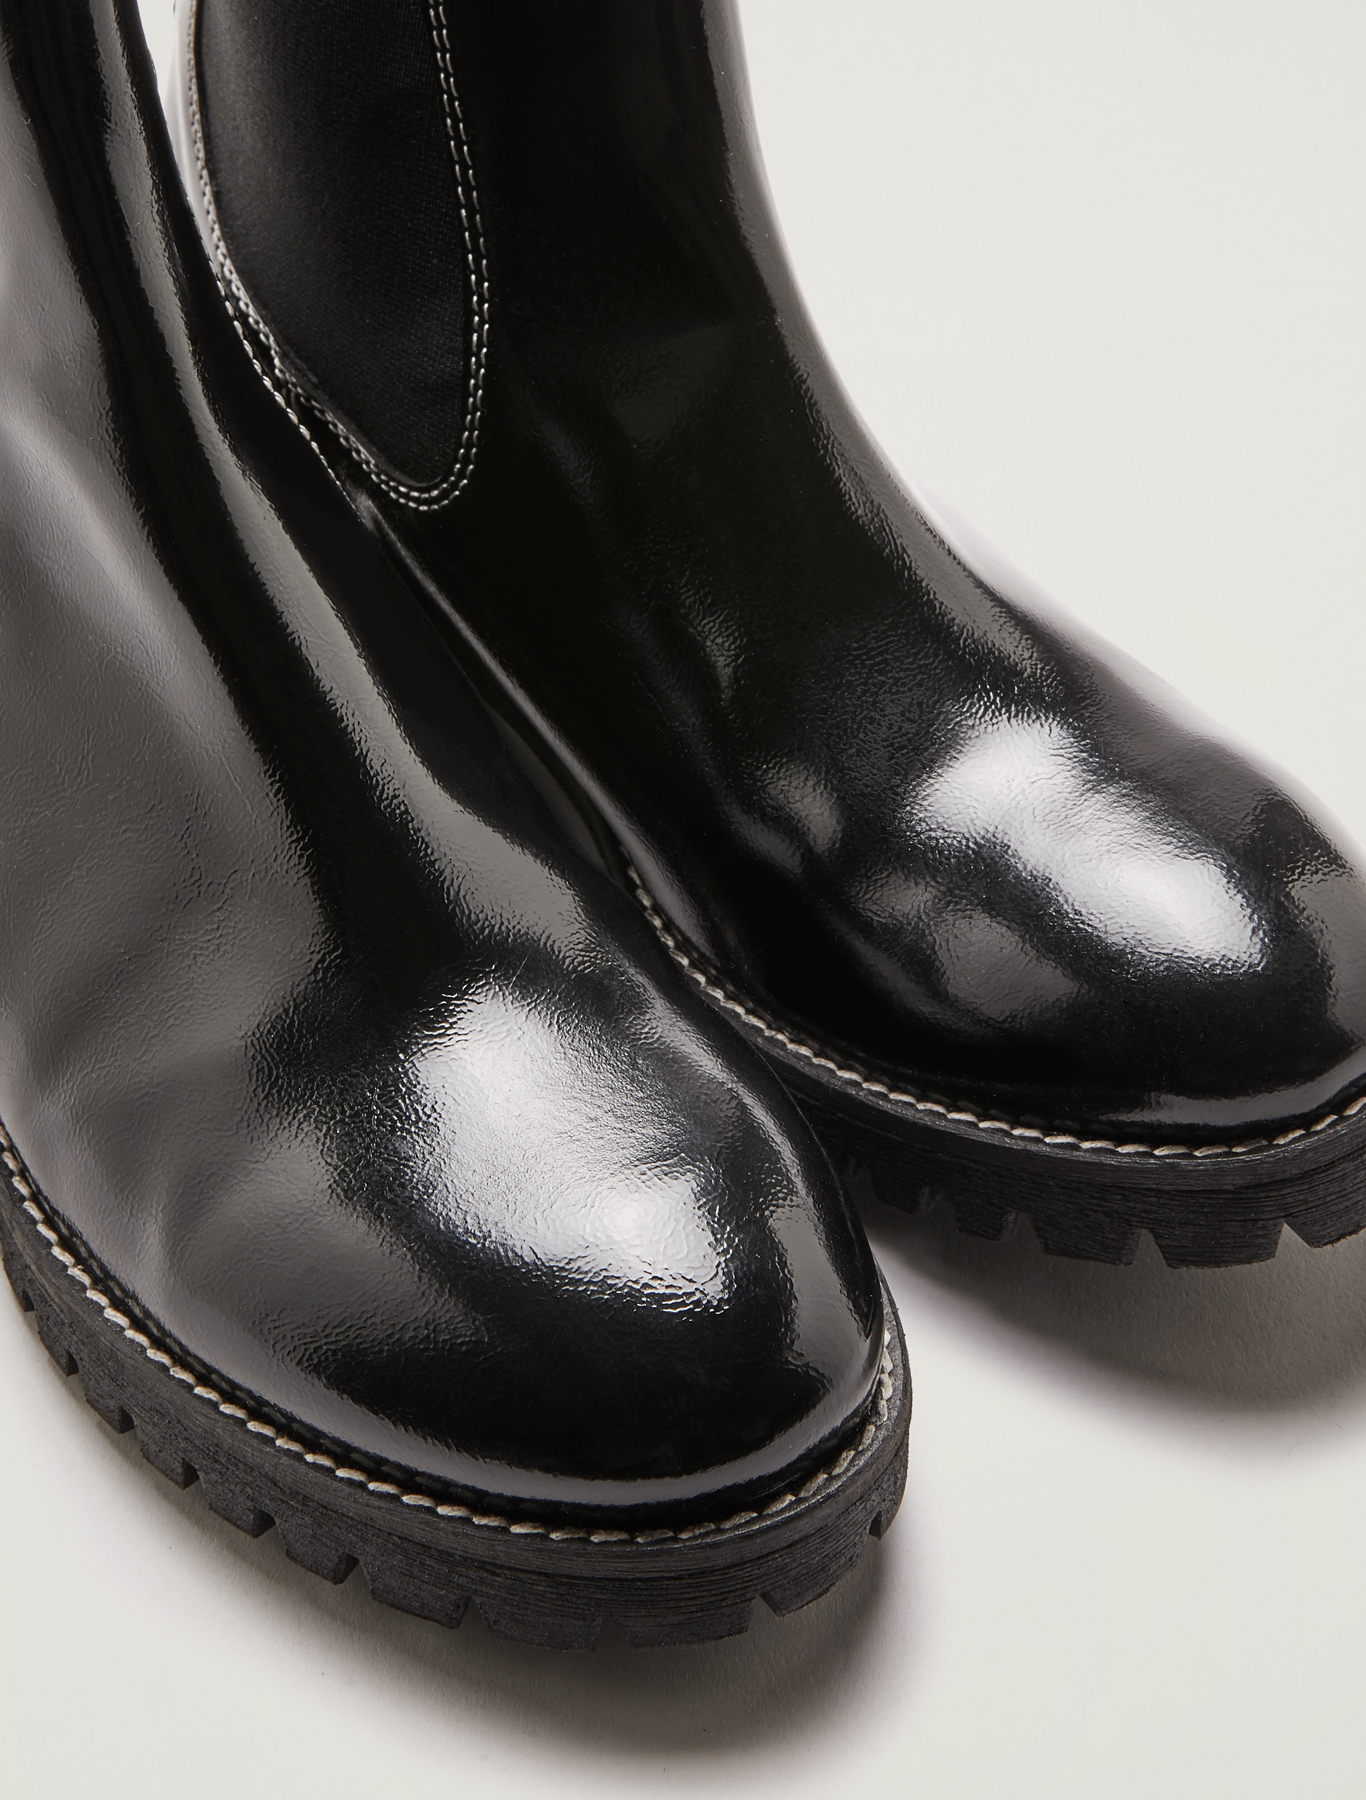 Patent leather Chelsea boots - black - pennyblack